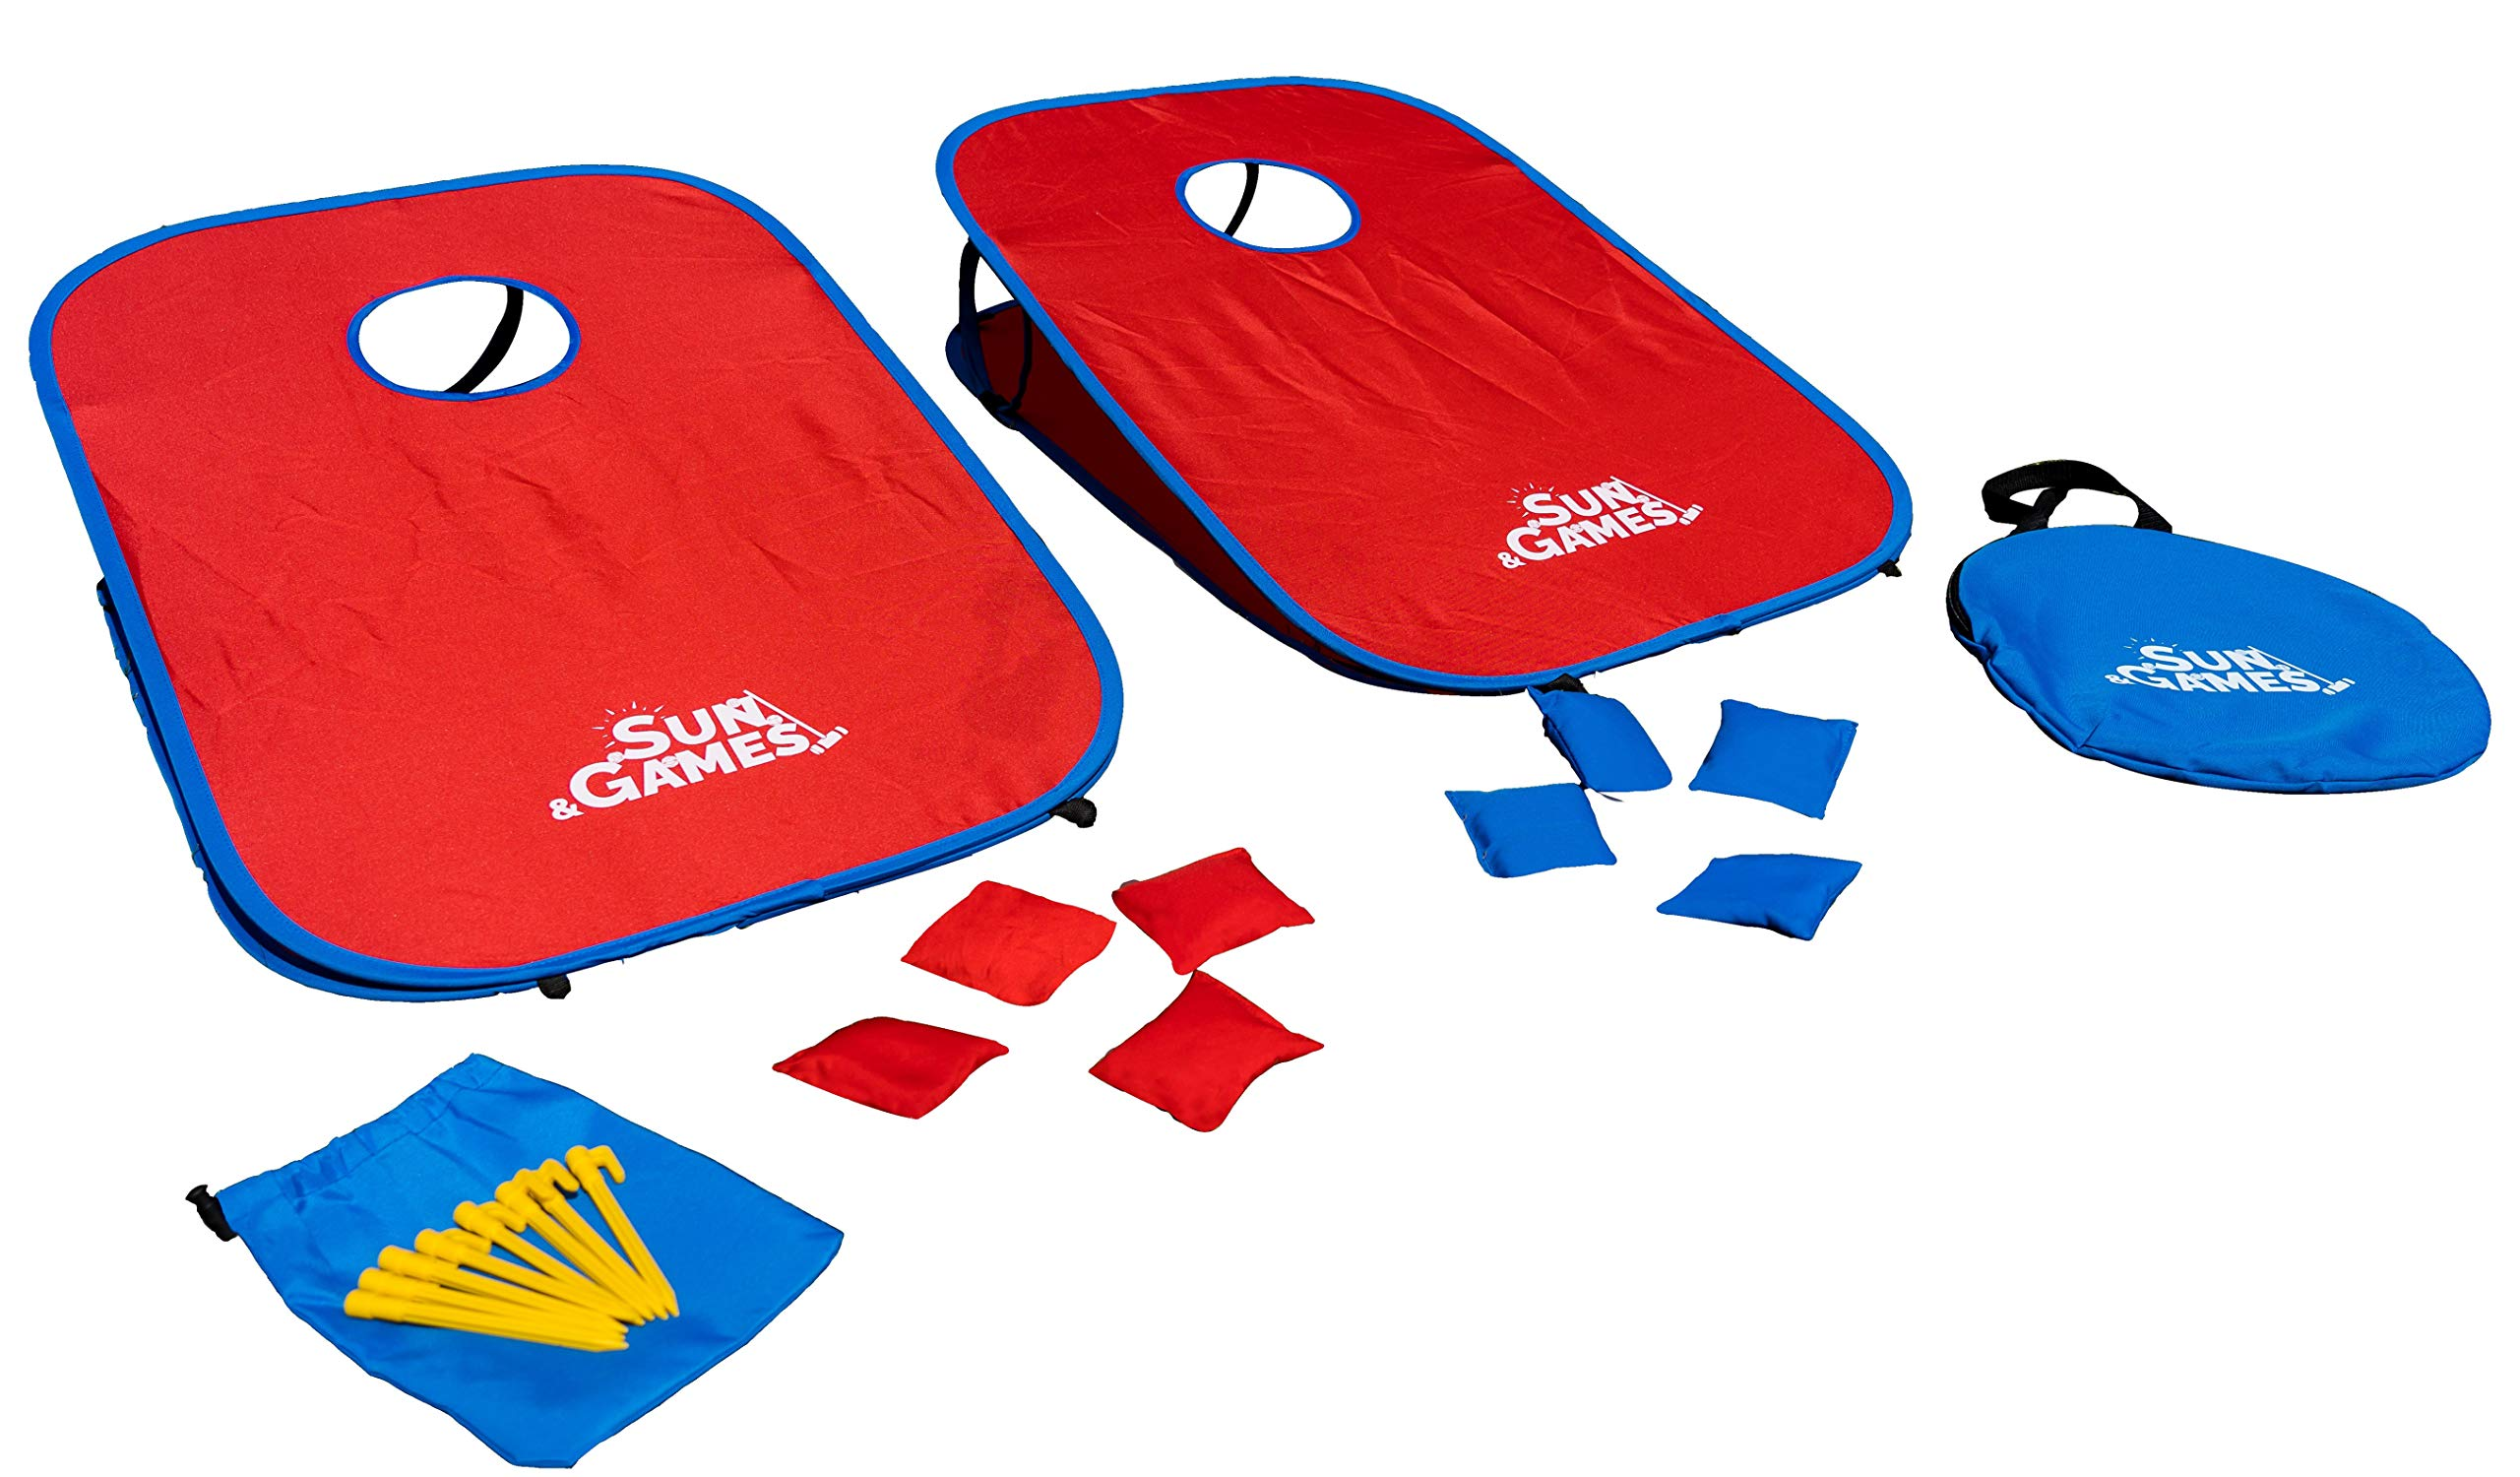 Portable Cornhole Game Set Made of All-Weather, Tear-Resistant Fabric | 8 beanbags and Travel Case | Tailgate Size